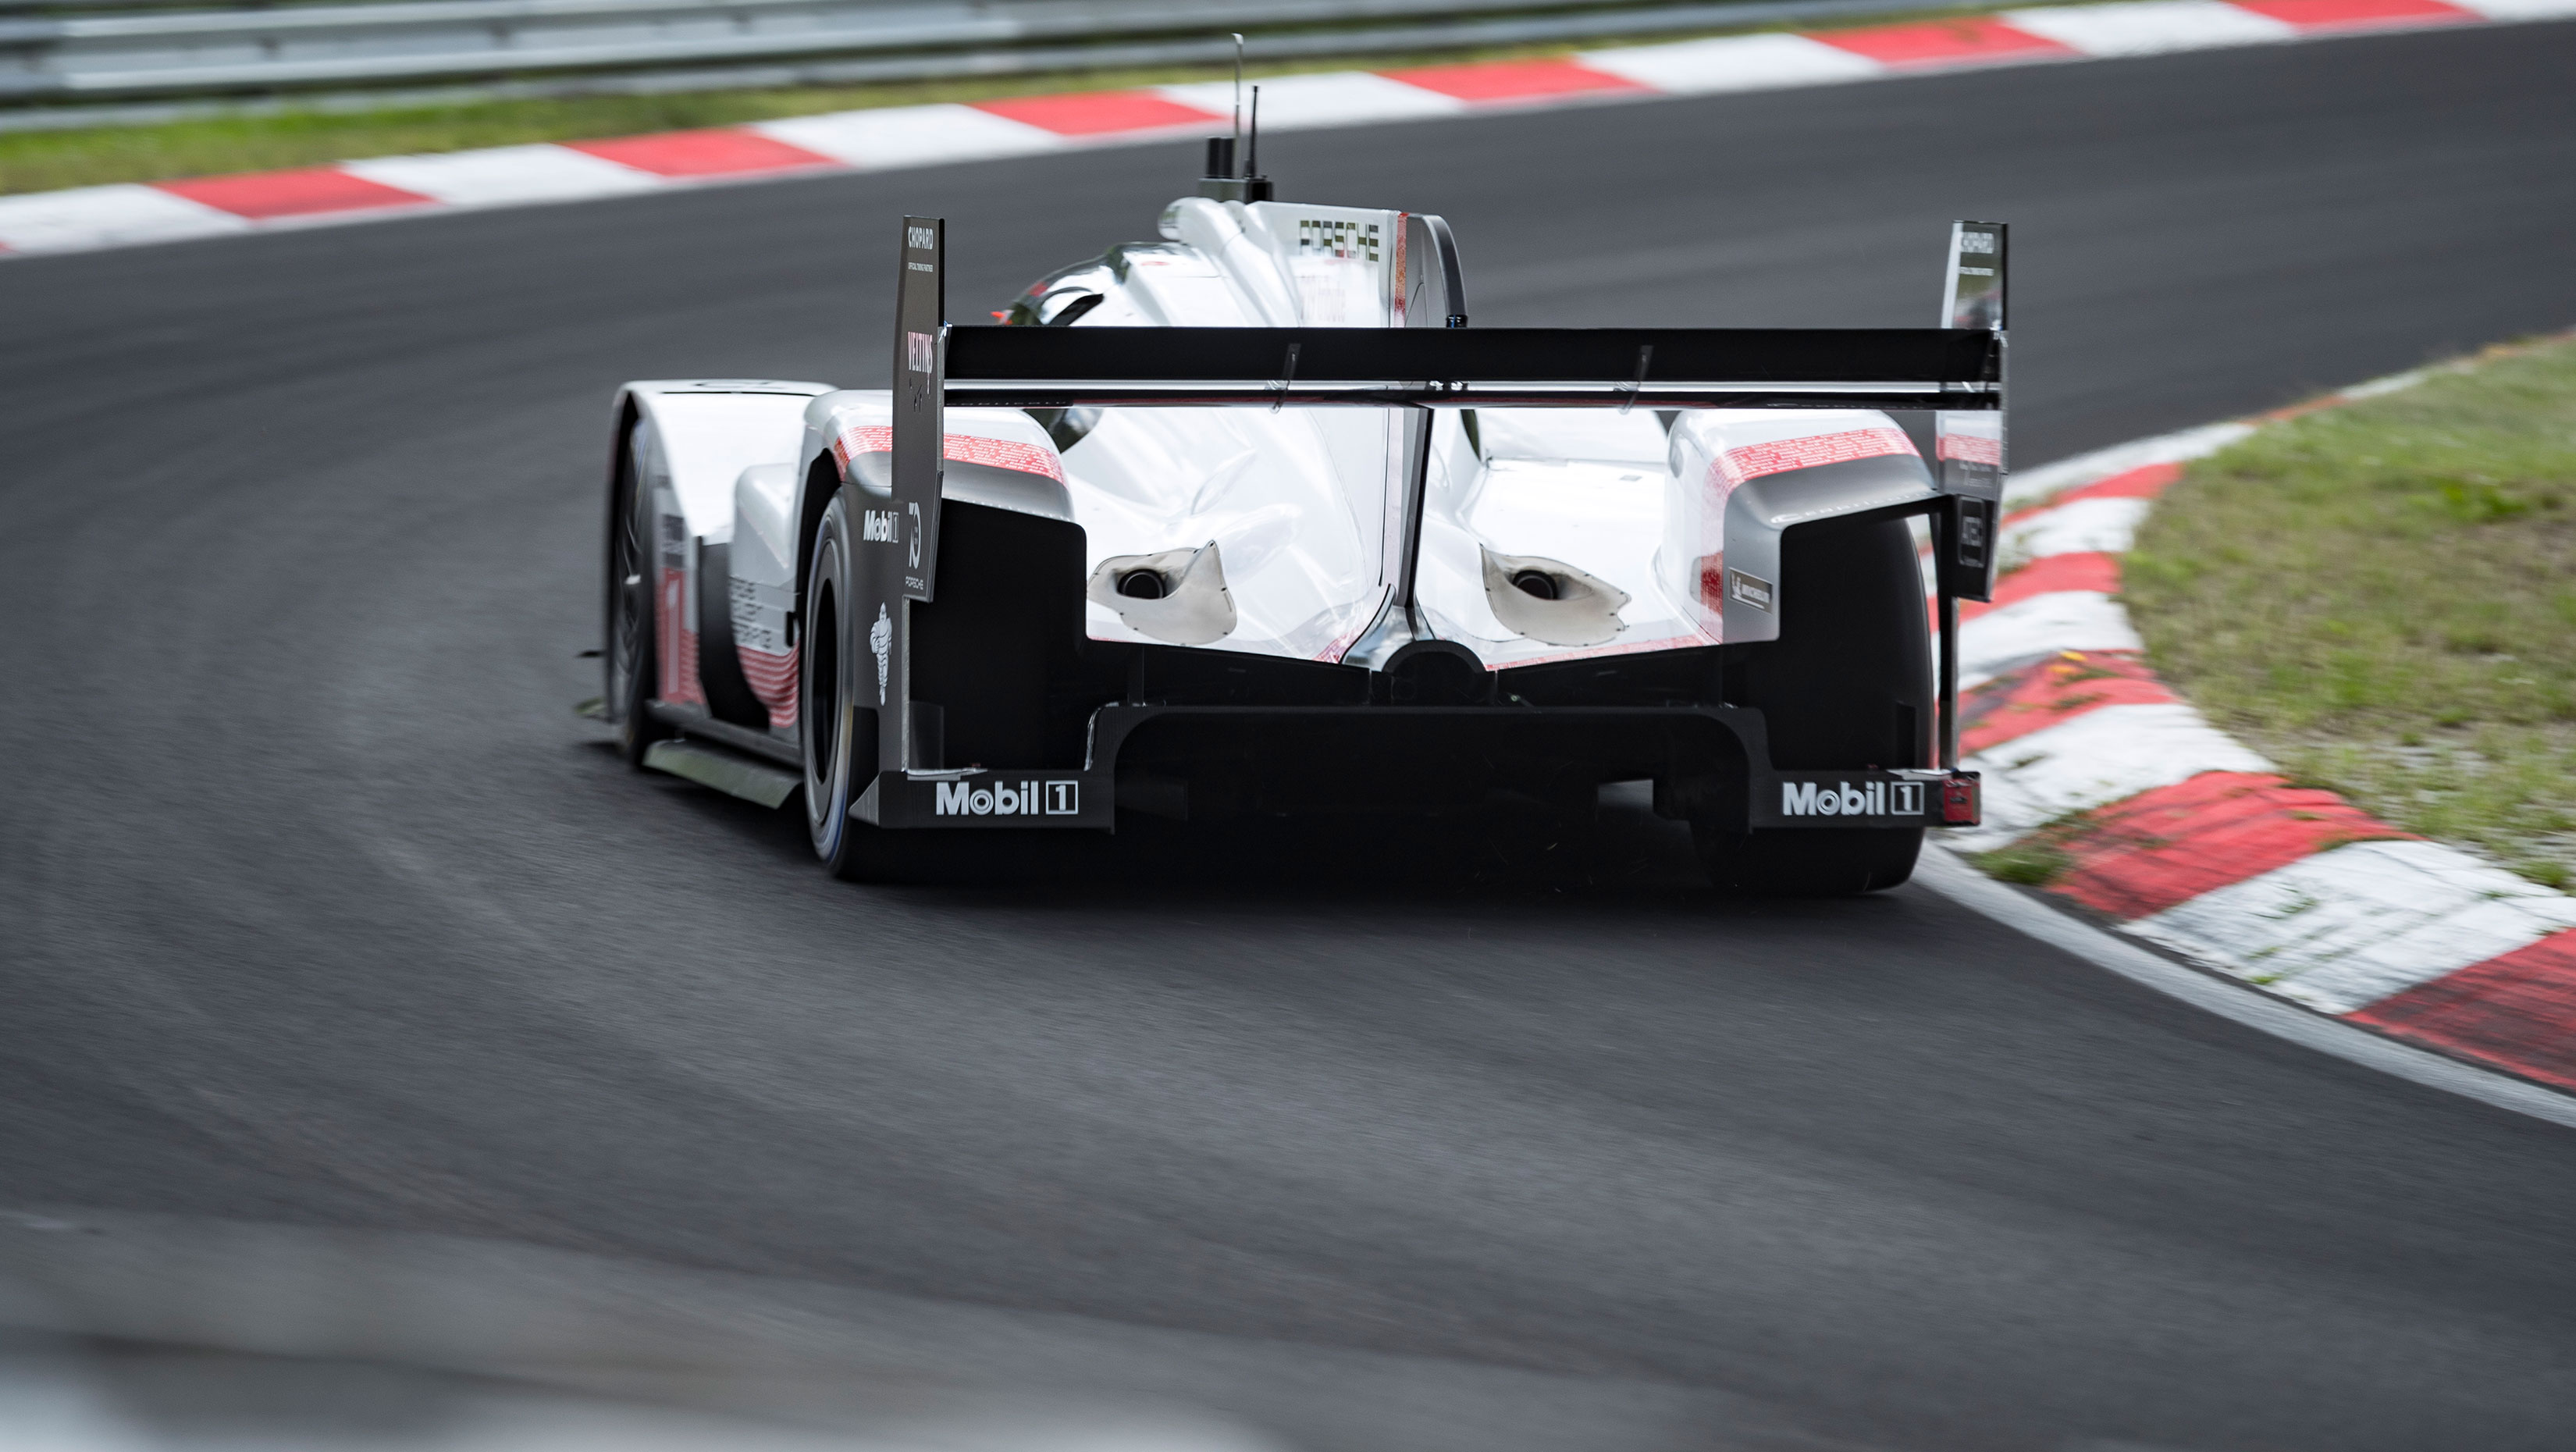 Porsche 919 Evo Nurburgring Record in Progress: Sets 5:19 Lap Time